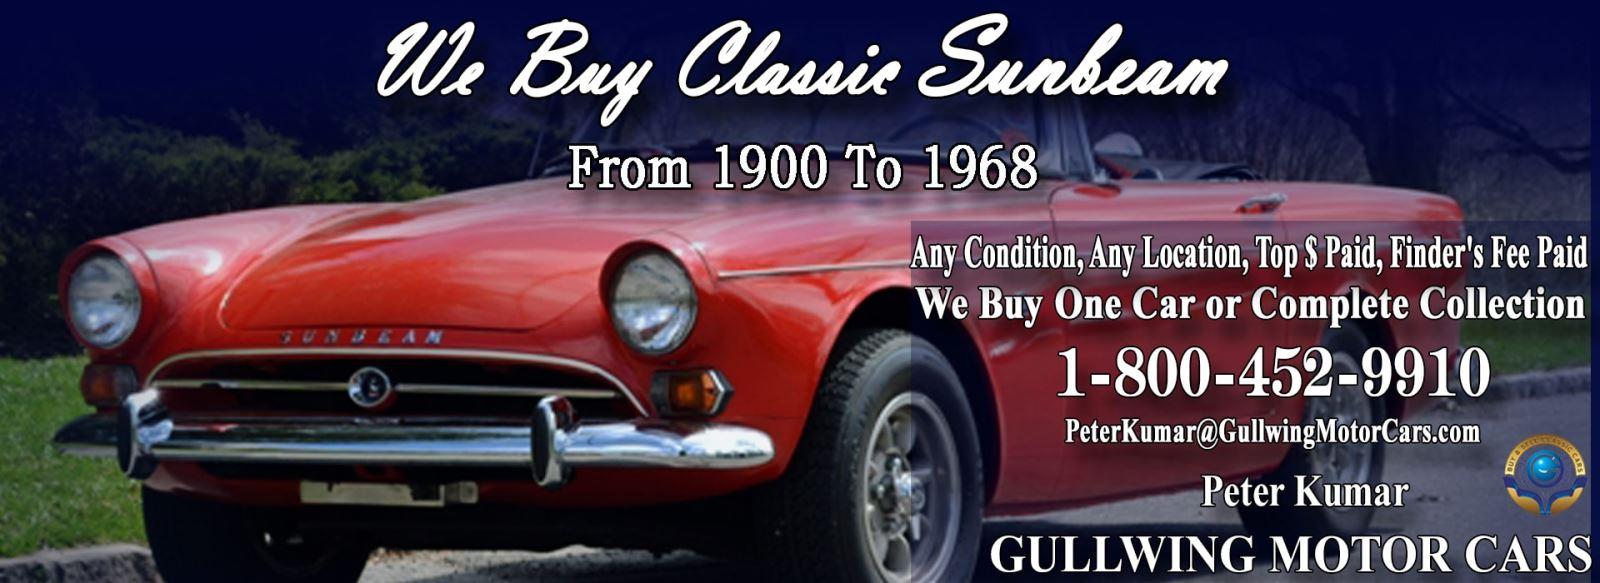 Classic Sunbeam for sale, we buy vintage Sunbeam. Call Peter Kumar. Gullwing Motor